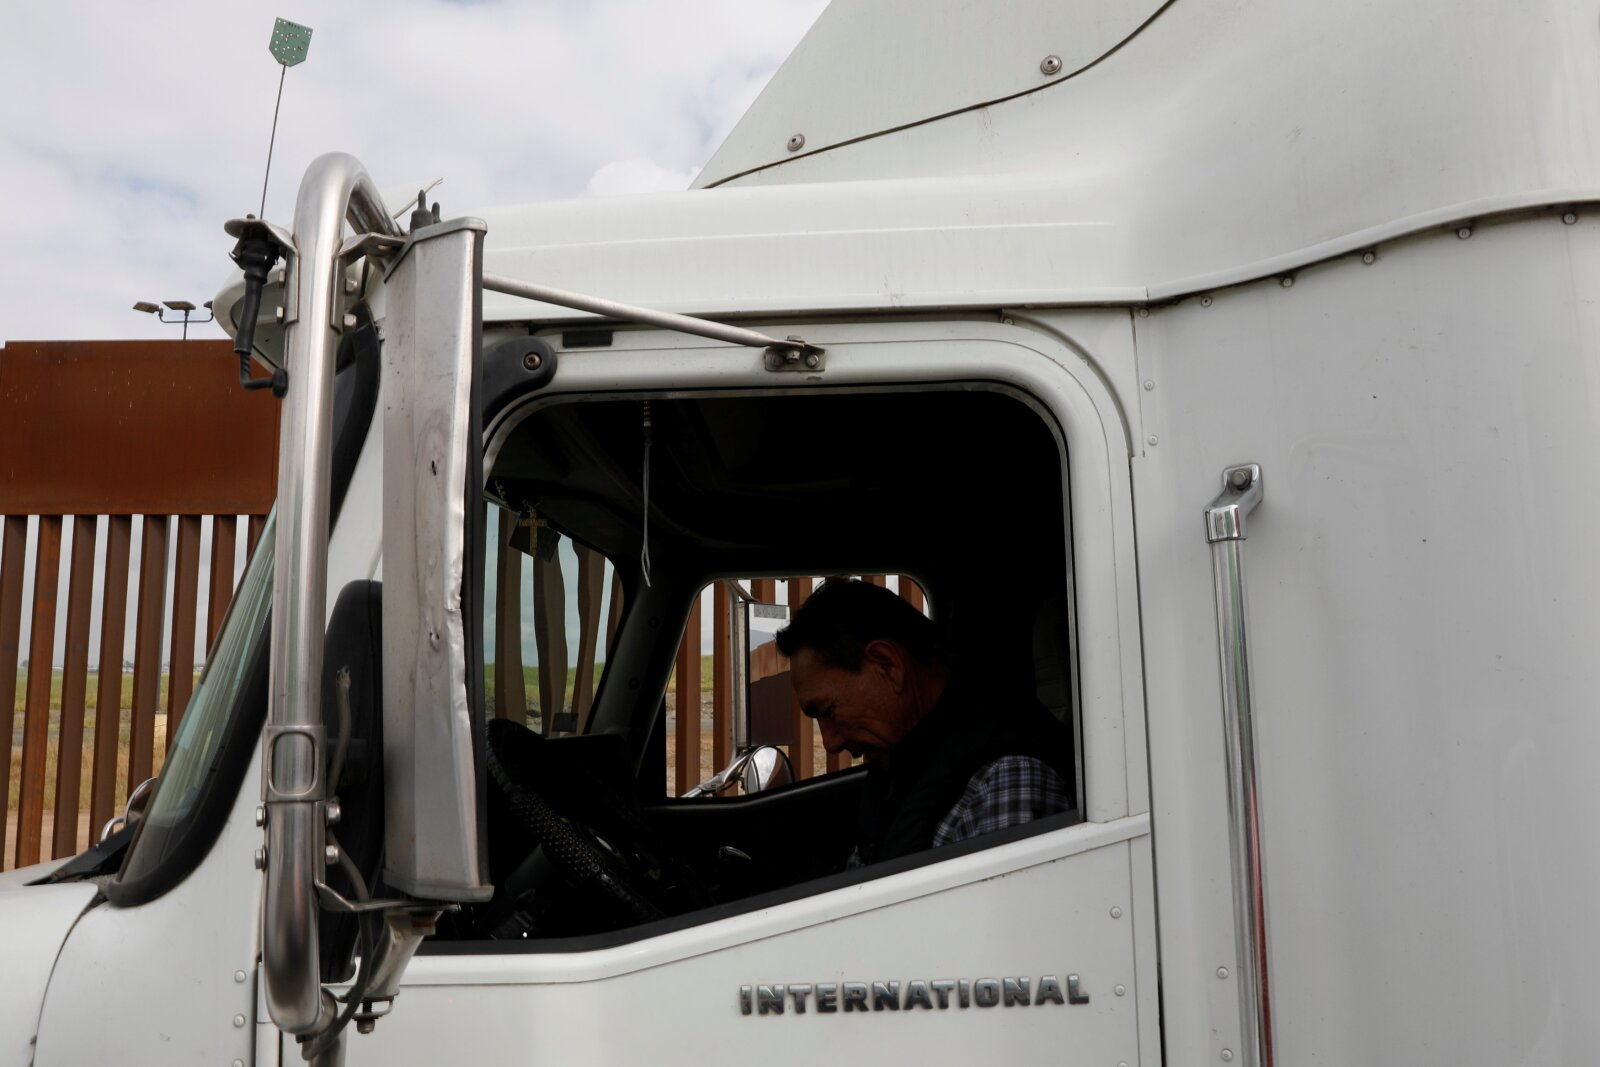 A truck driver waits in a long queue for border customs control to cross into the U.S., at the Otay border crossing in Tijuana